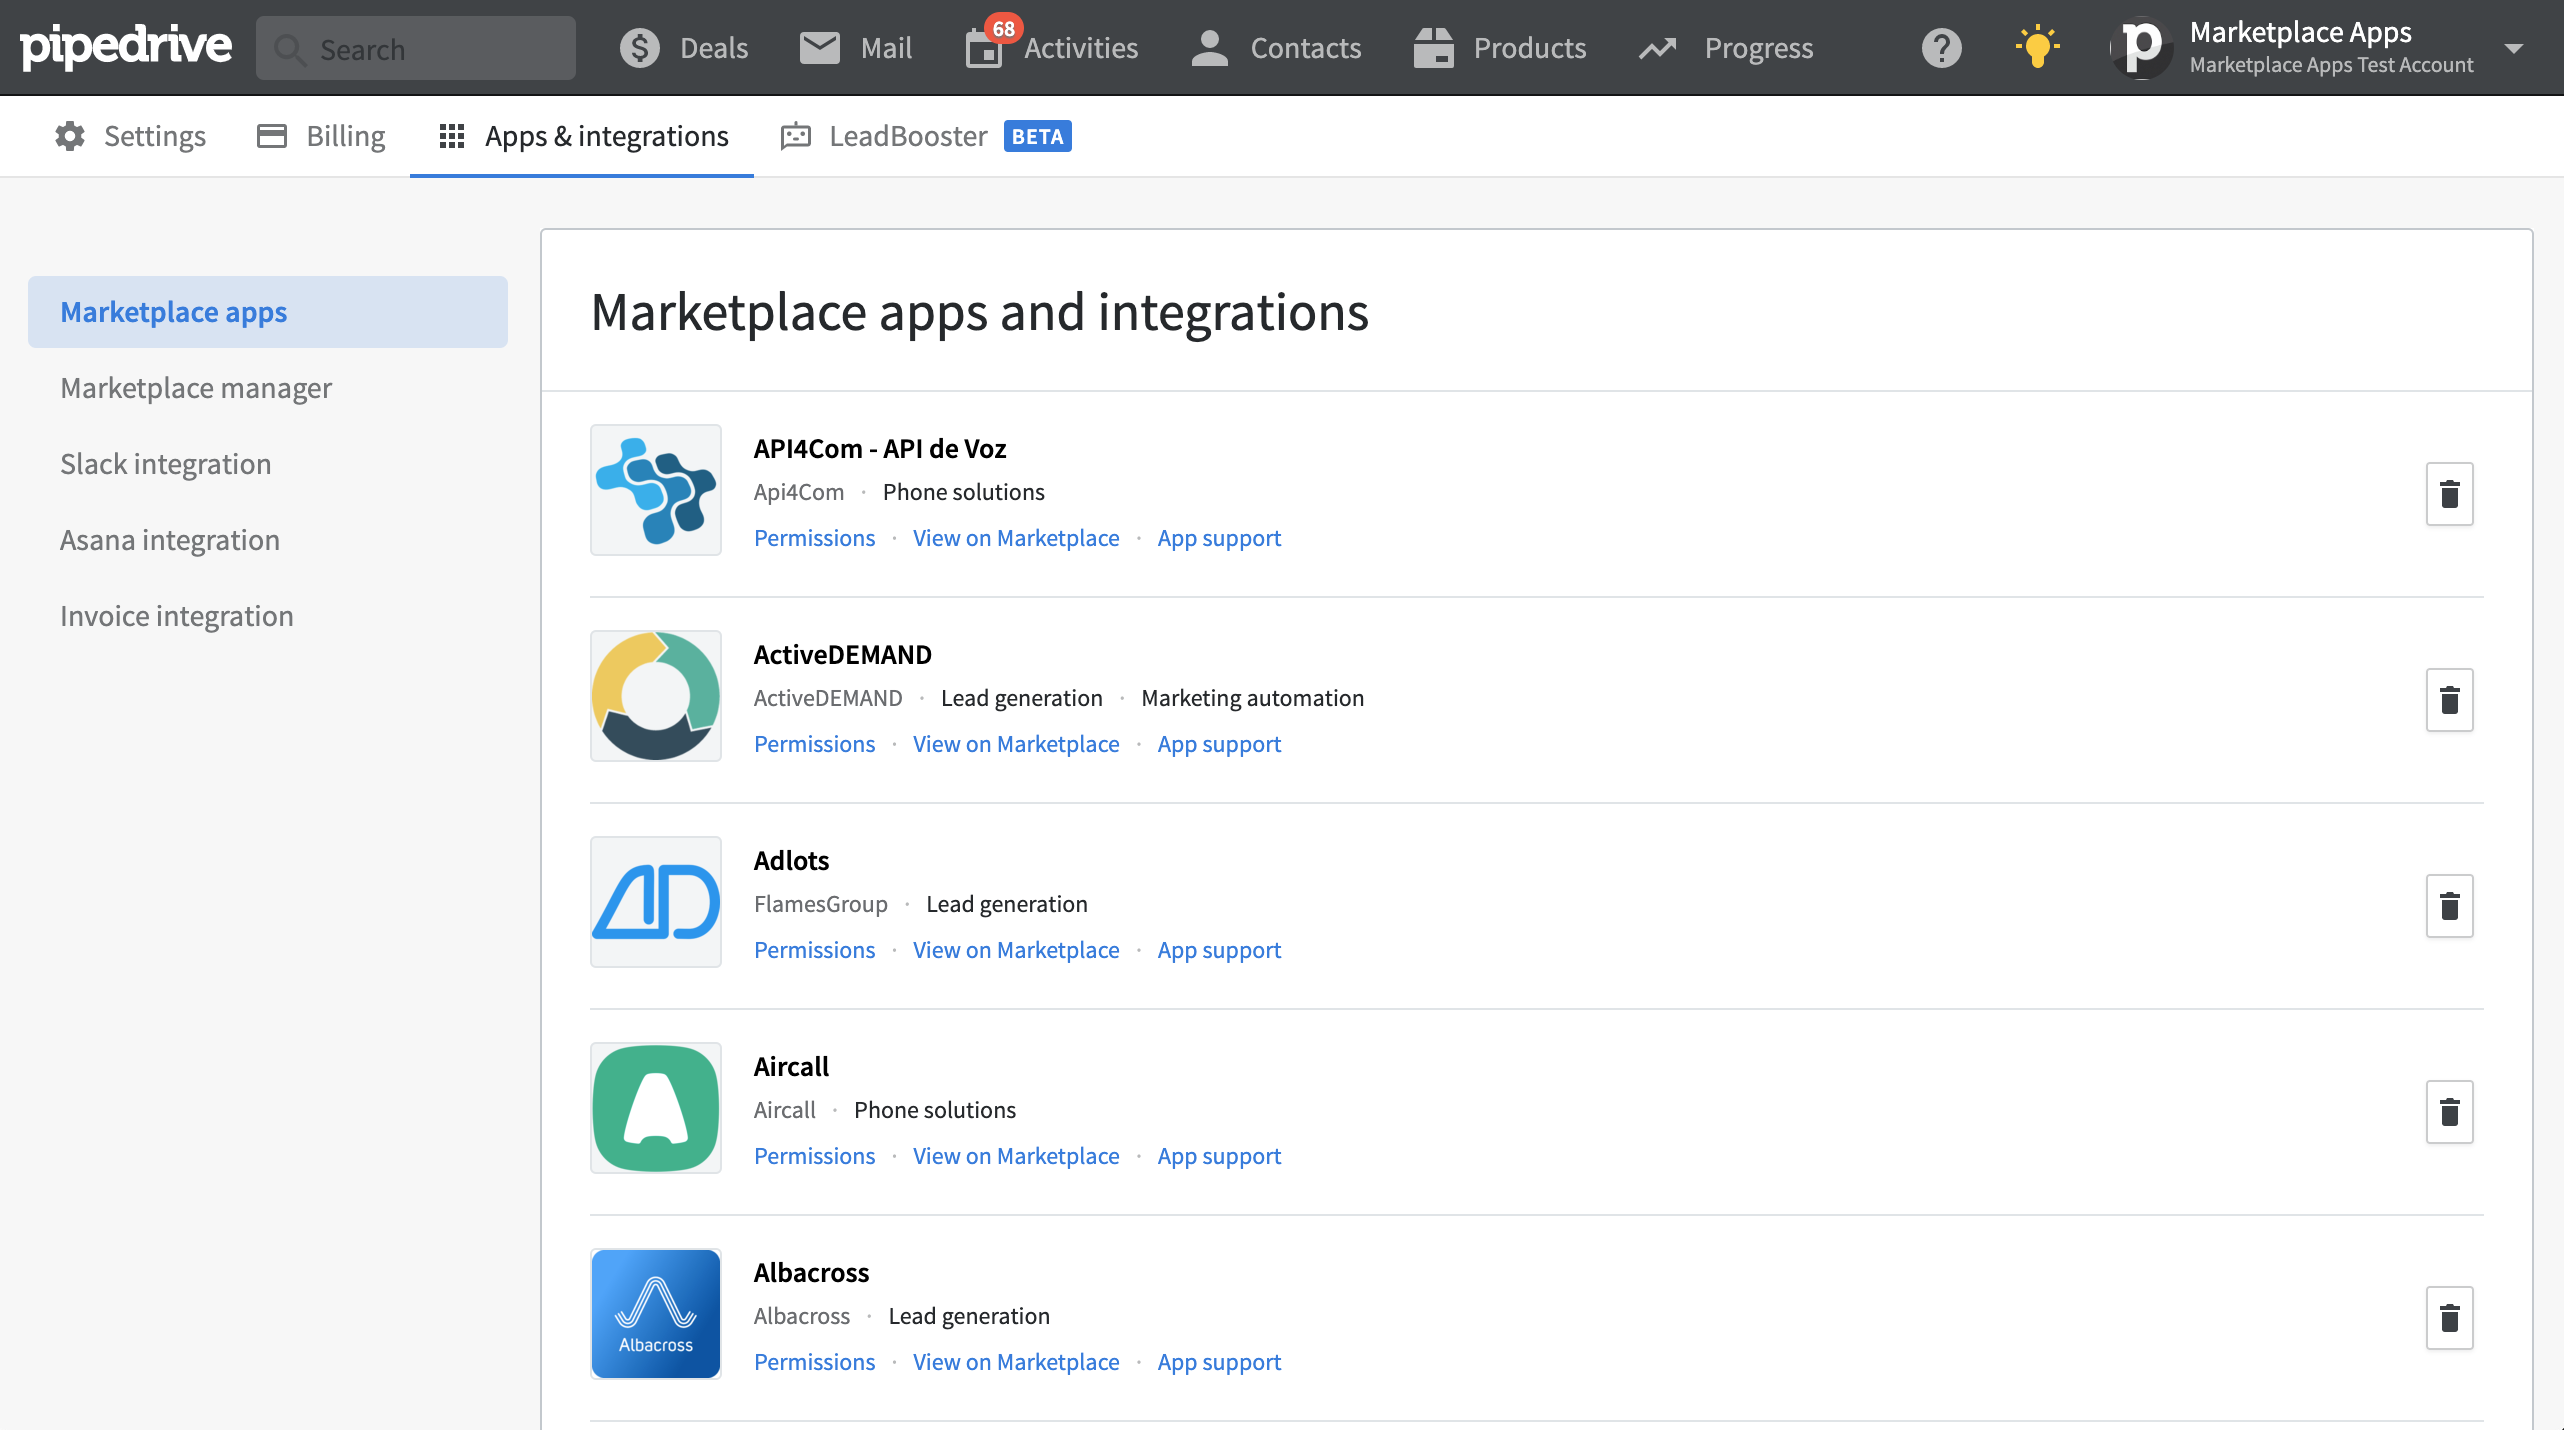 Marketplace apps and integrations